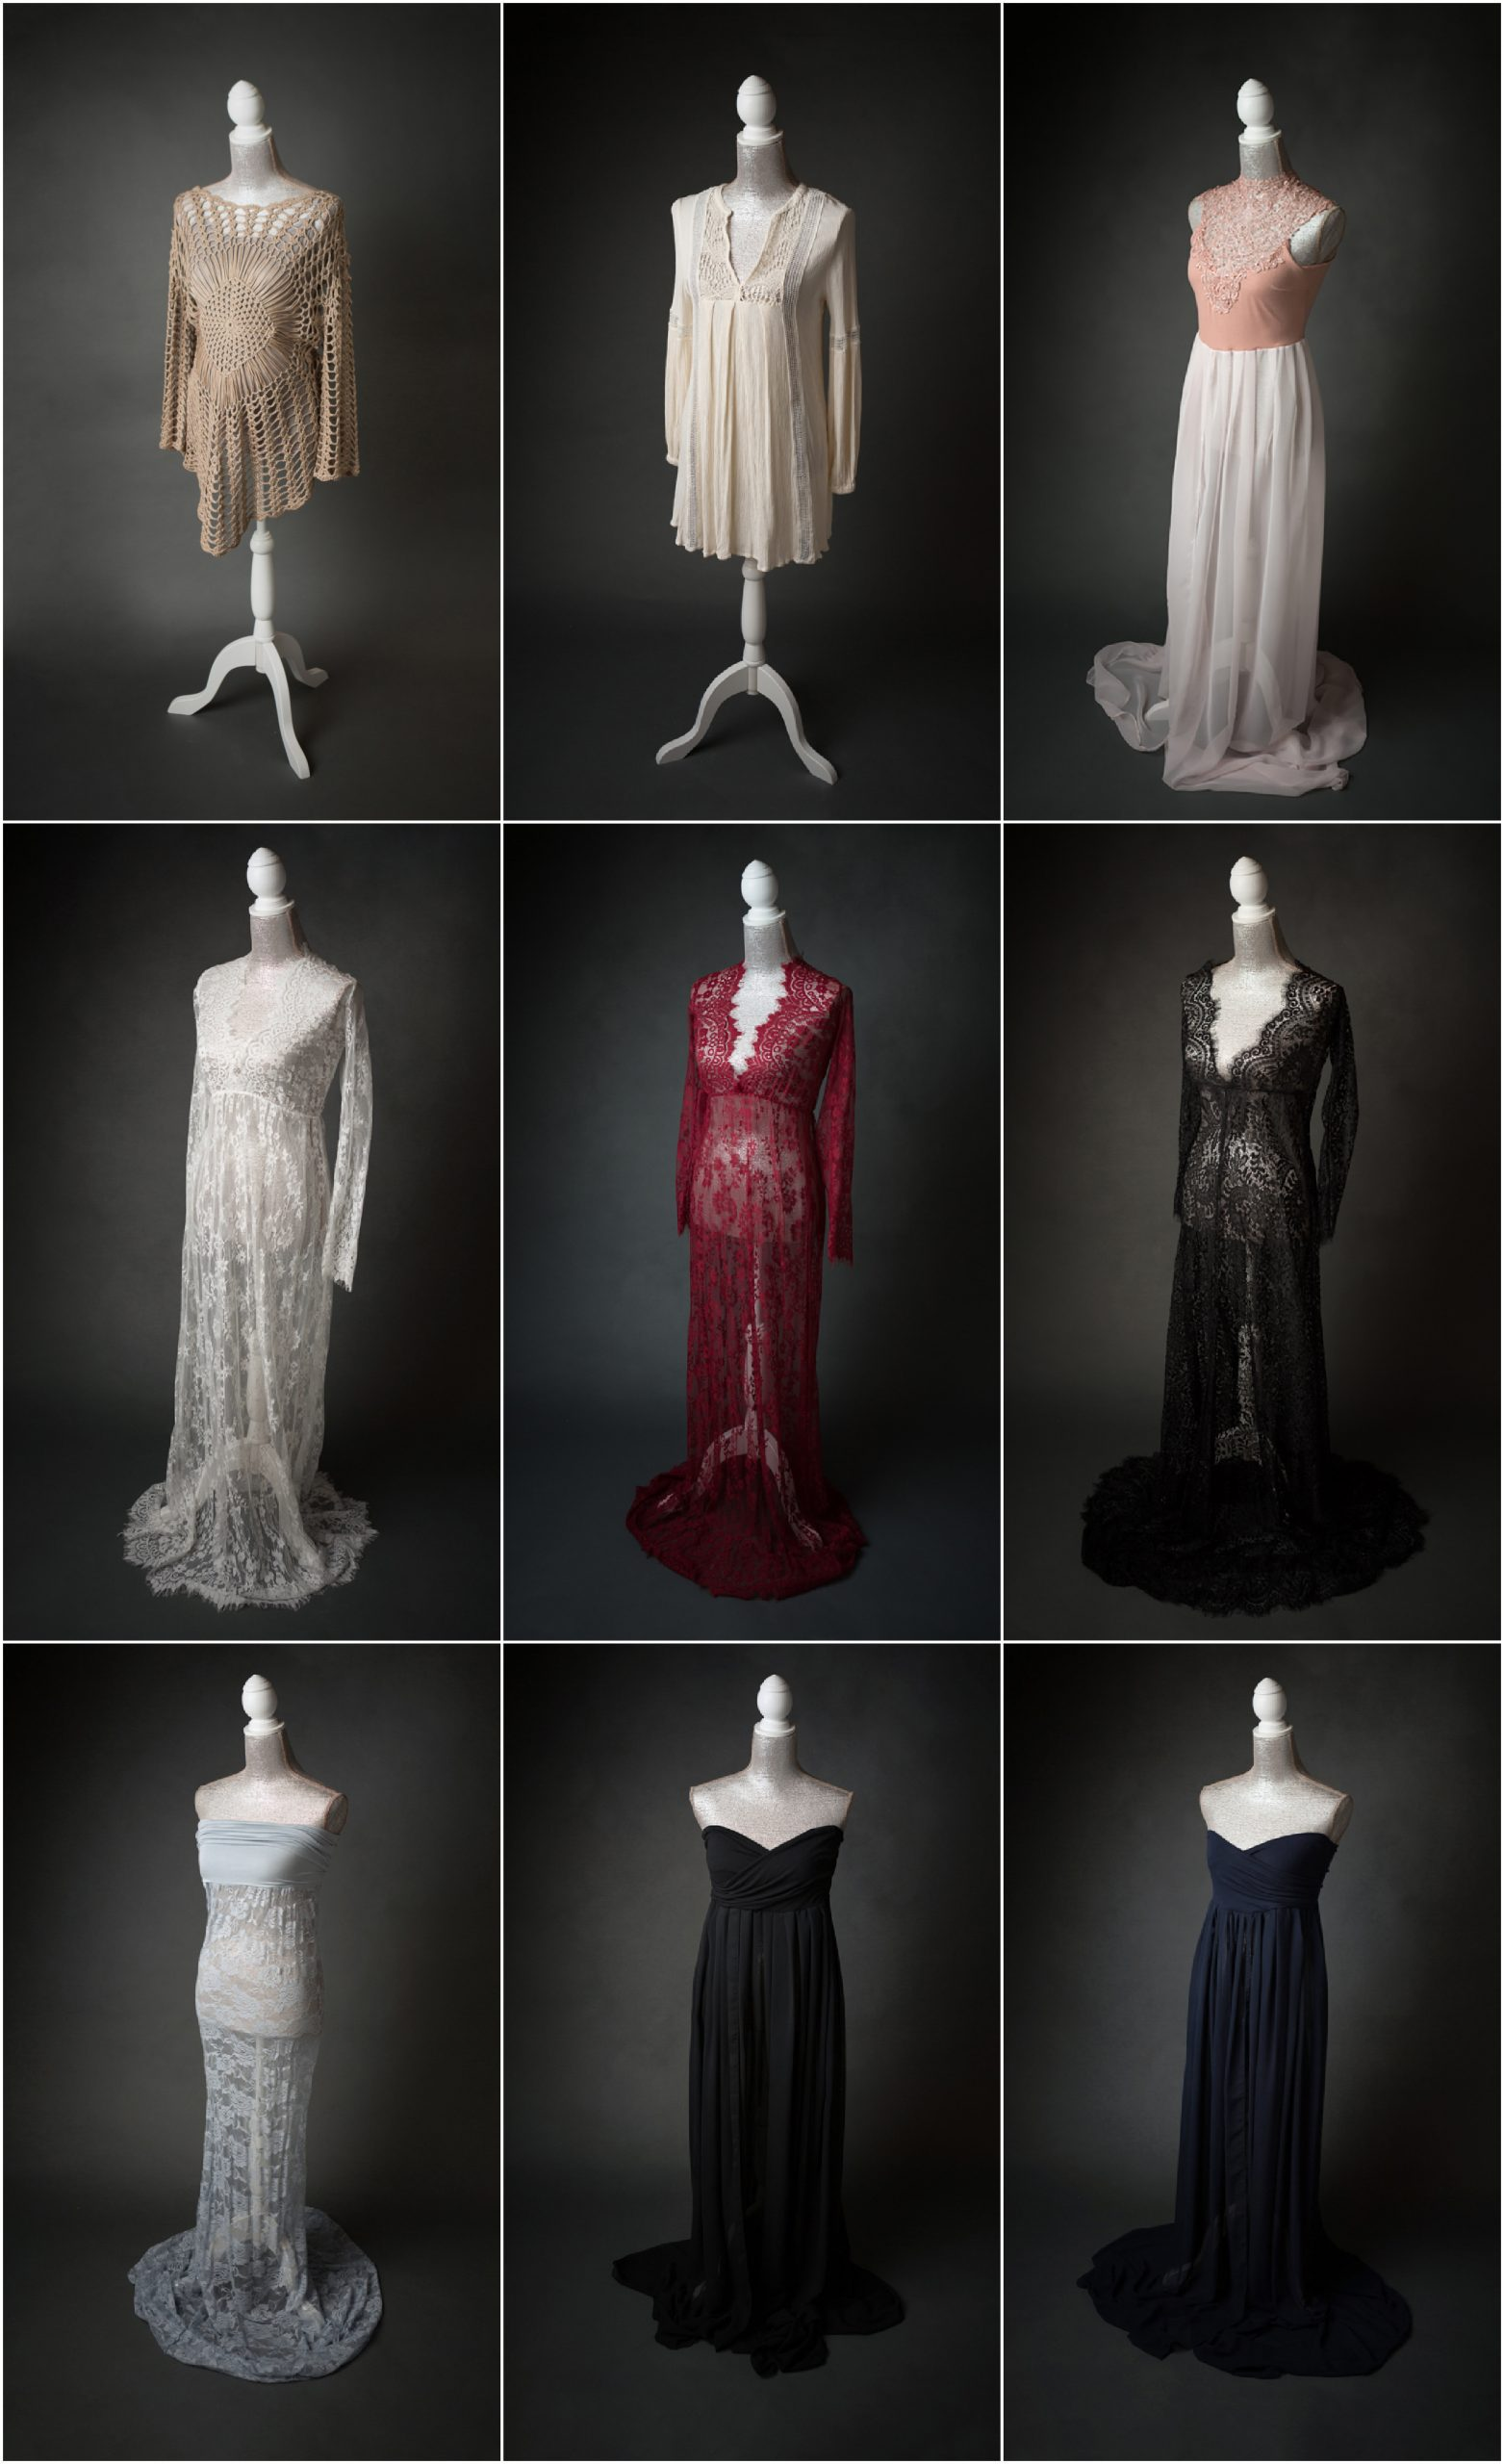 lace and sheer photo shoot dresses for portraits in san antonio, texas by jenn brookover photography